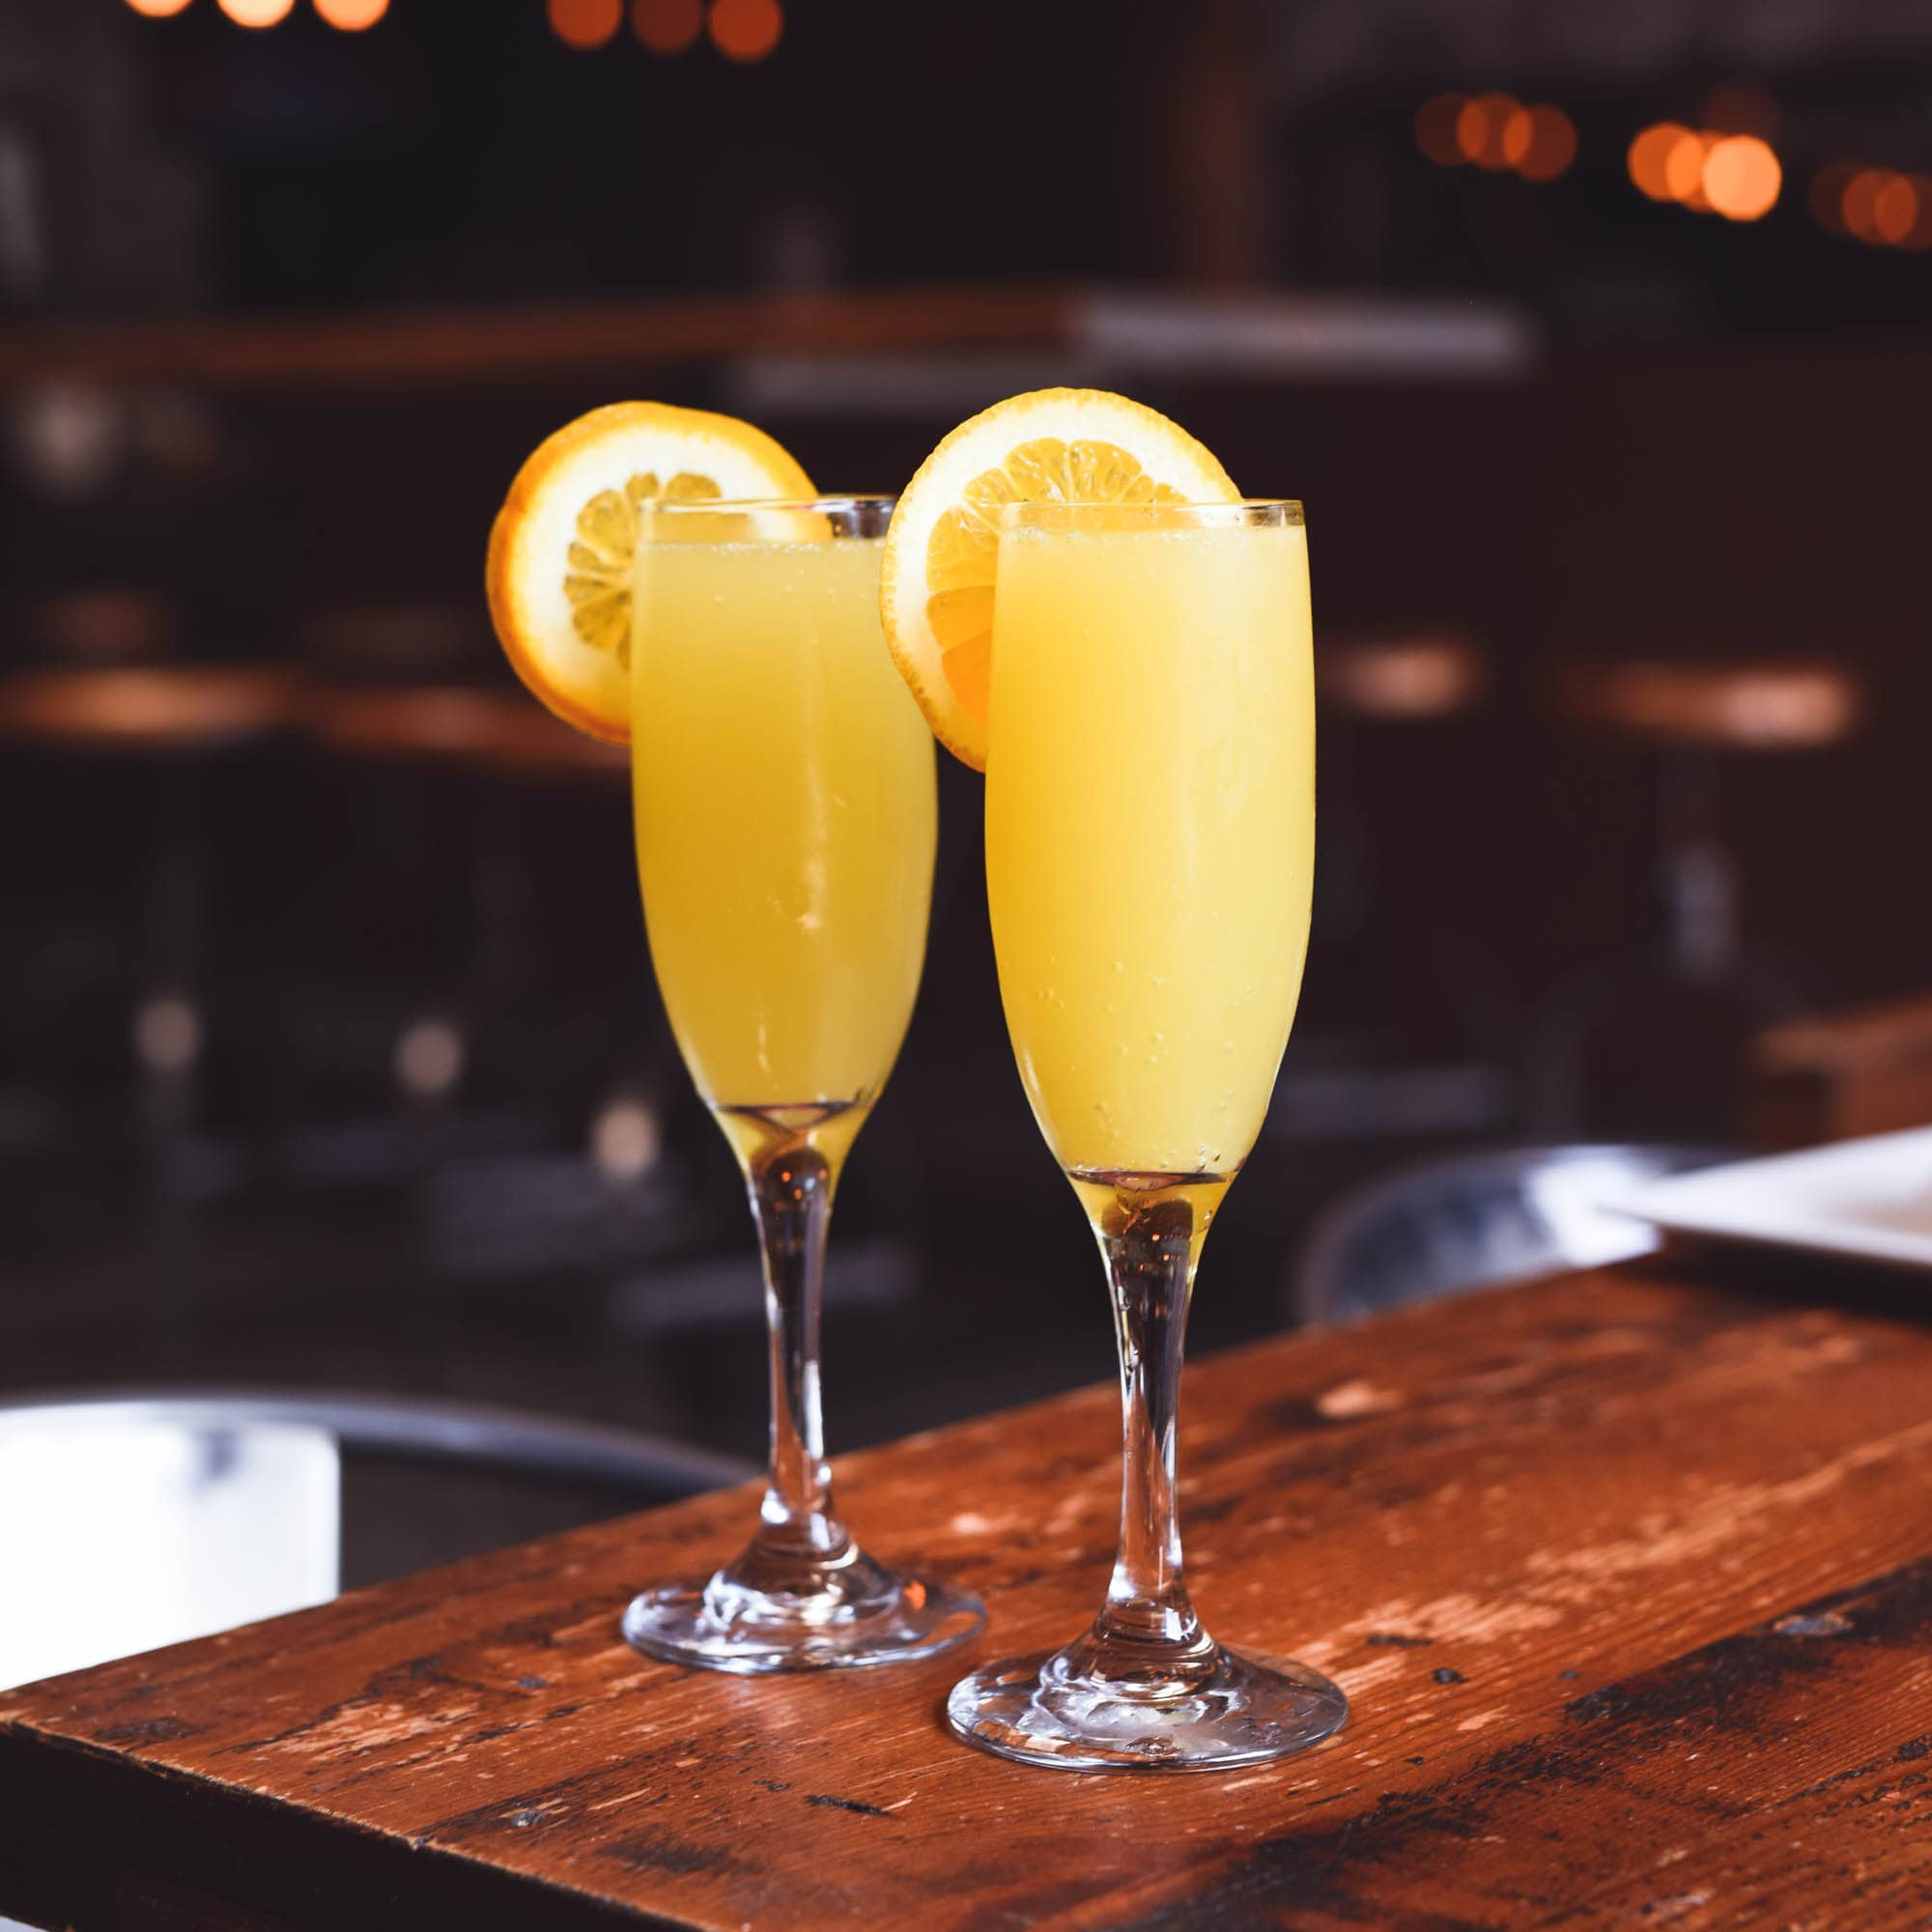 Brunch mimosa set up with champagne.